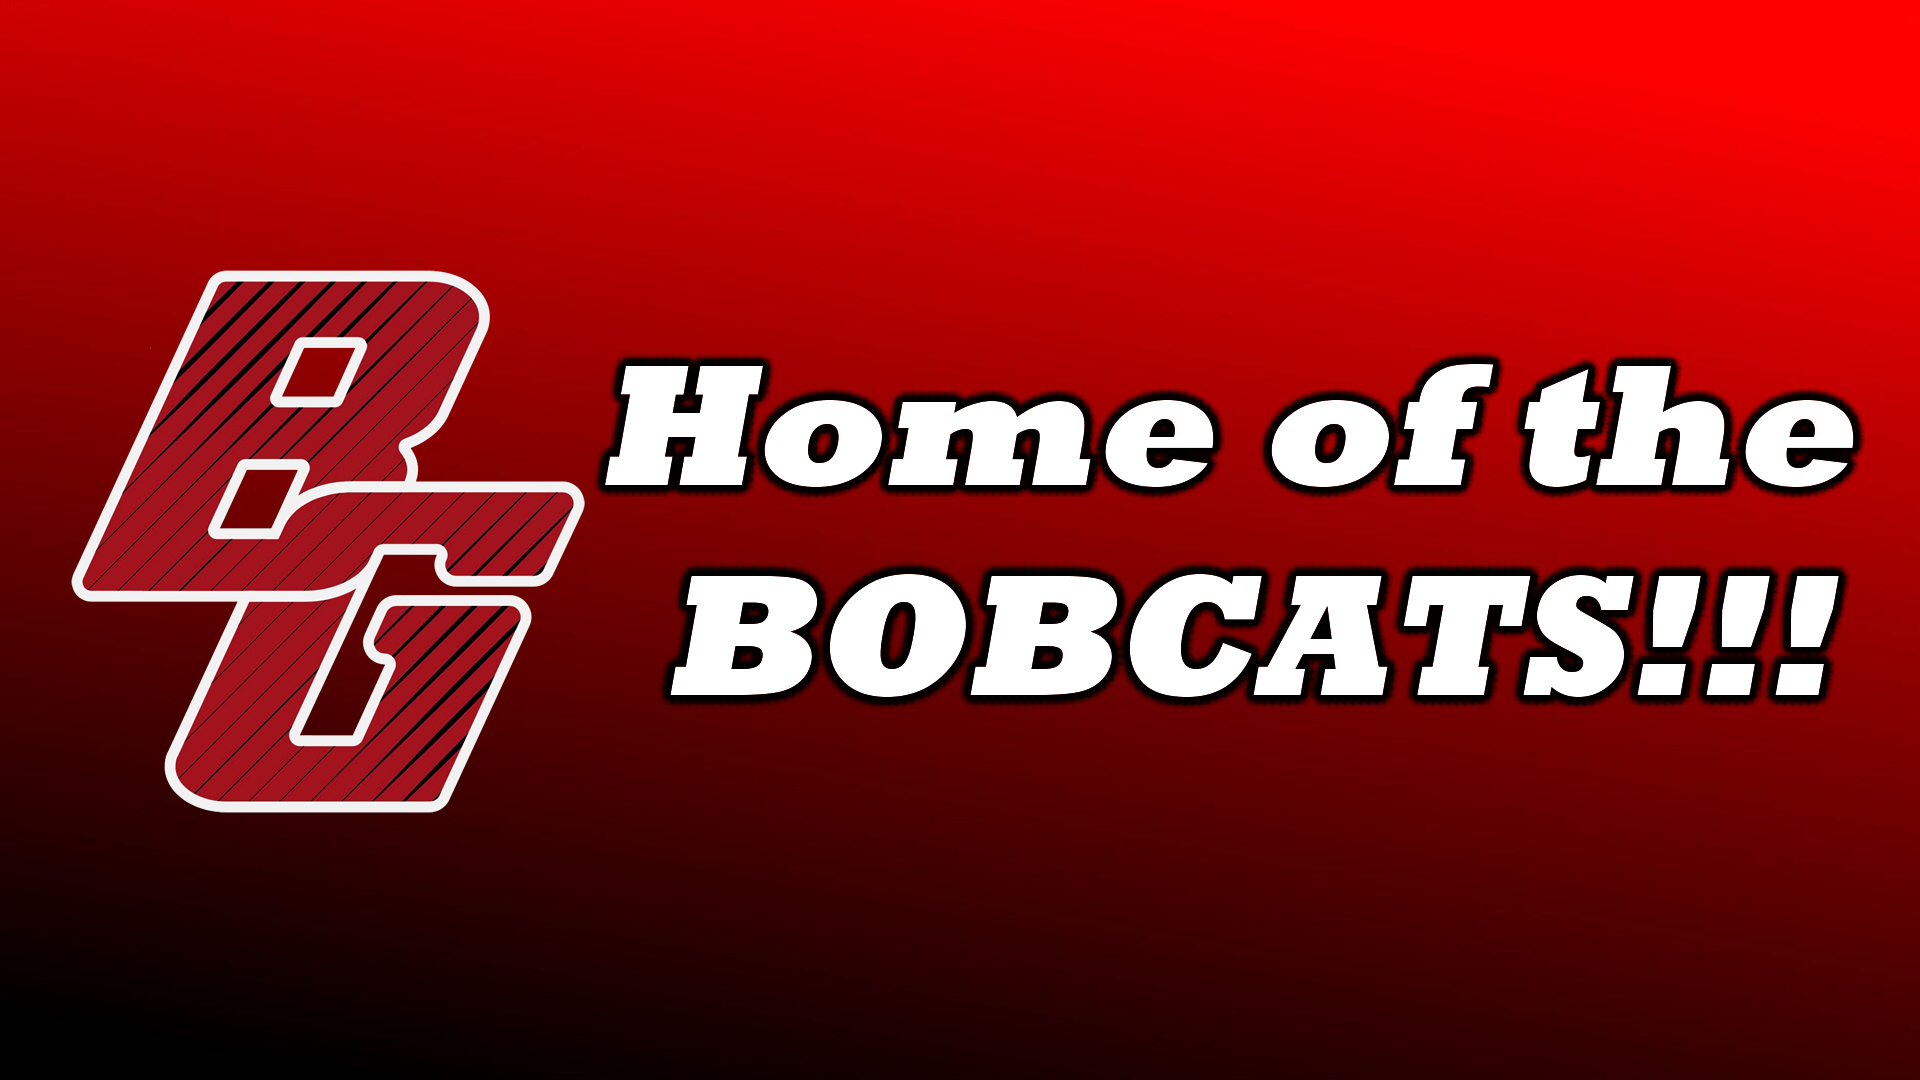 Home of the Bobcats!